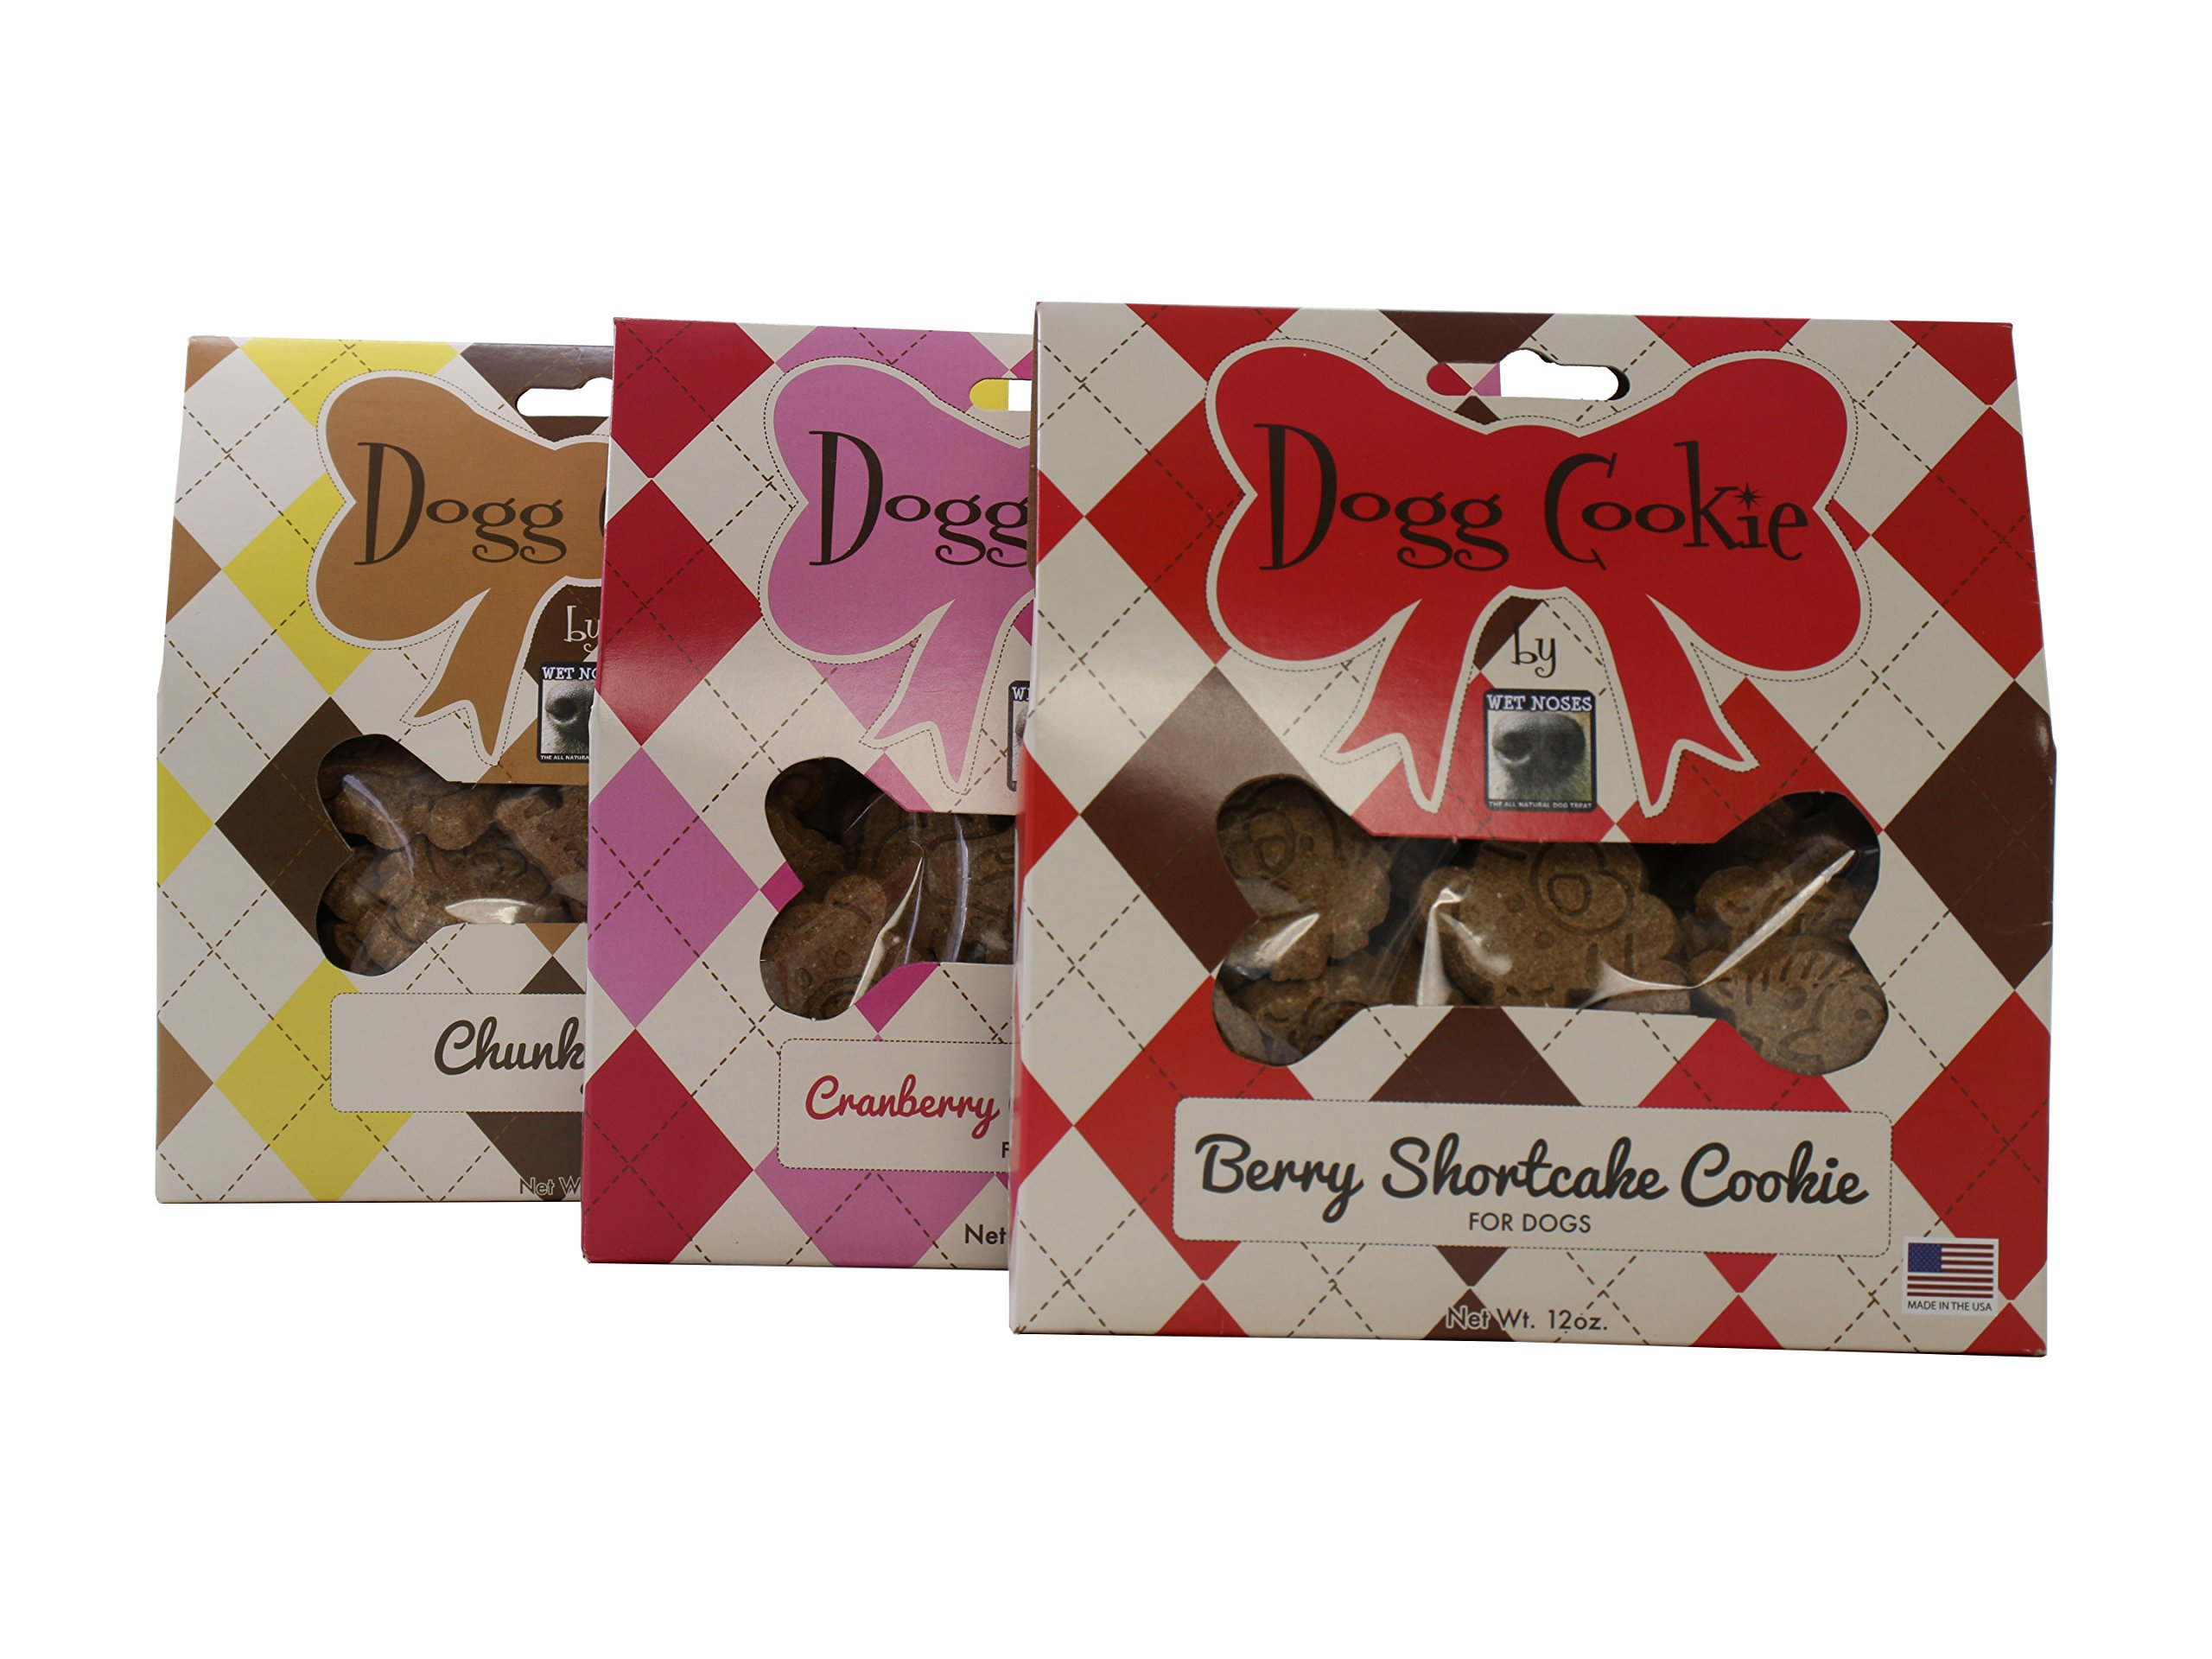 Dogg Cookie Variety Bundle - Chunky Chip, Cranberry Oatmeal, Berry Shortcake